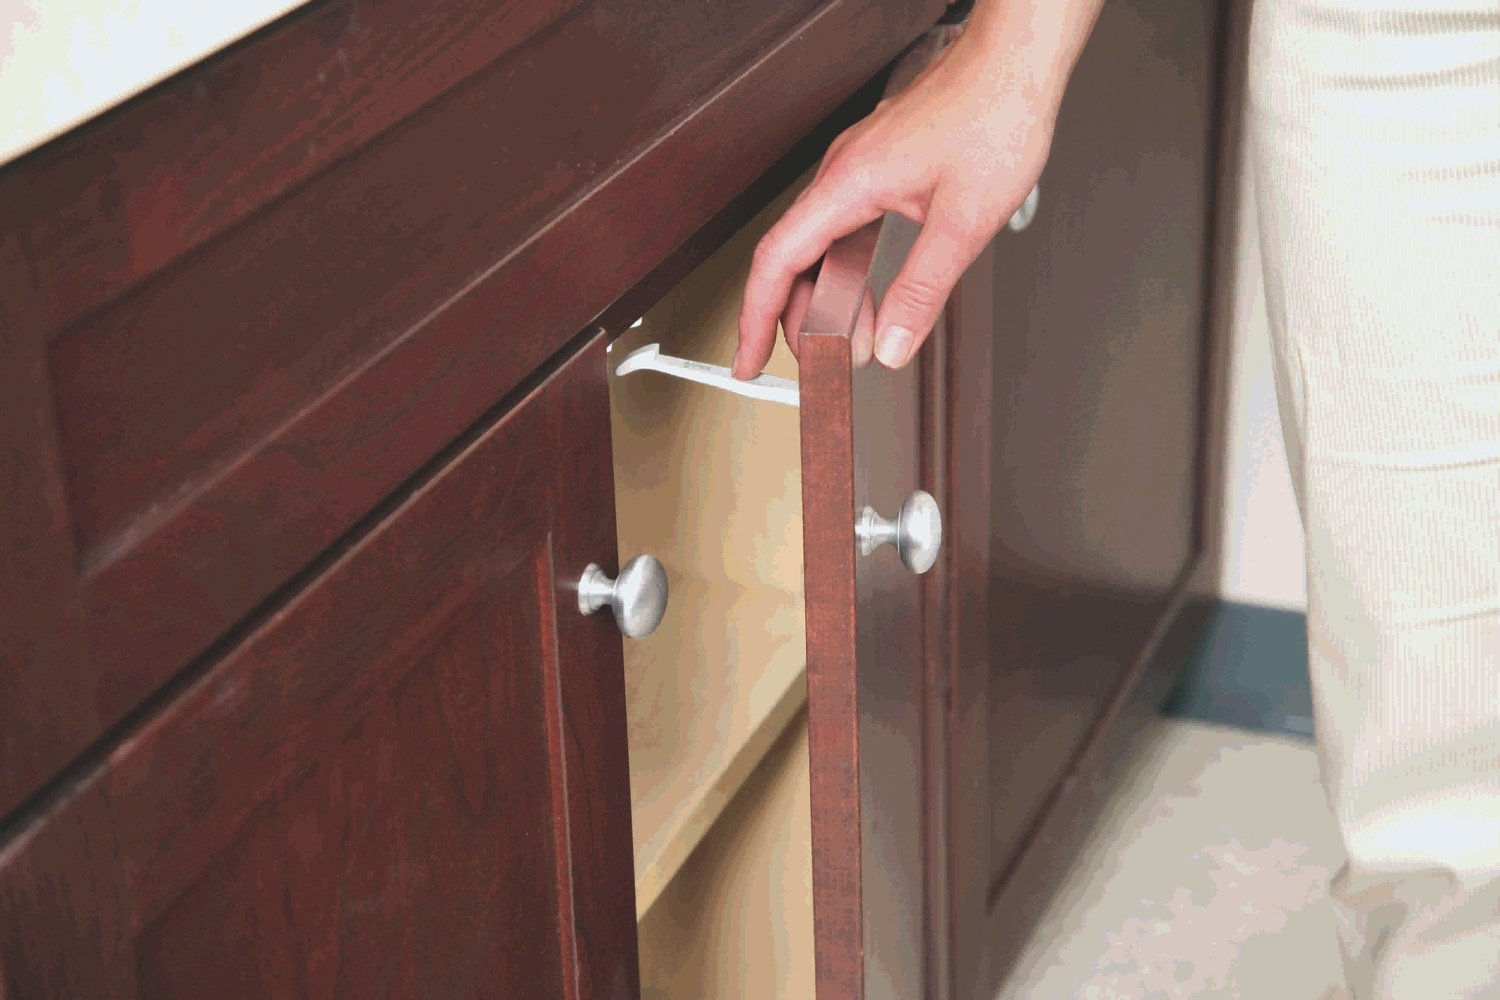 Safety 1st Cabinet and Drawer Latches, 7-Count by Safety 1st (Image #1)